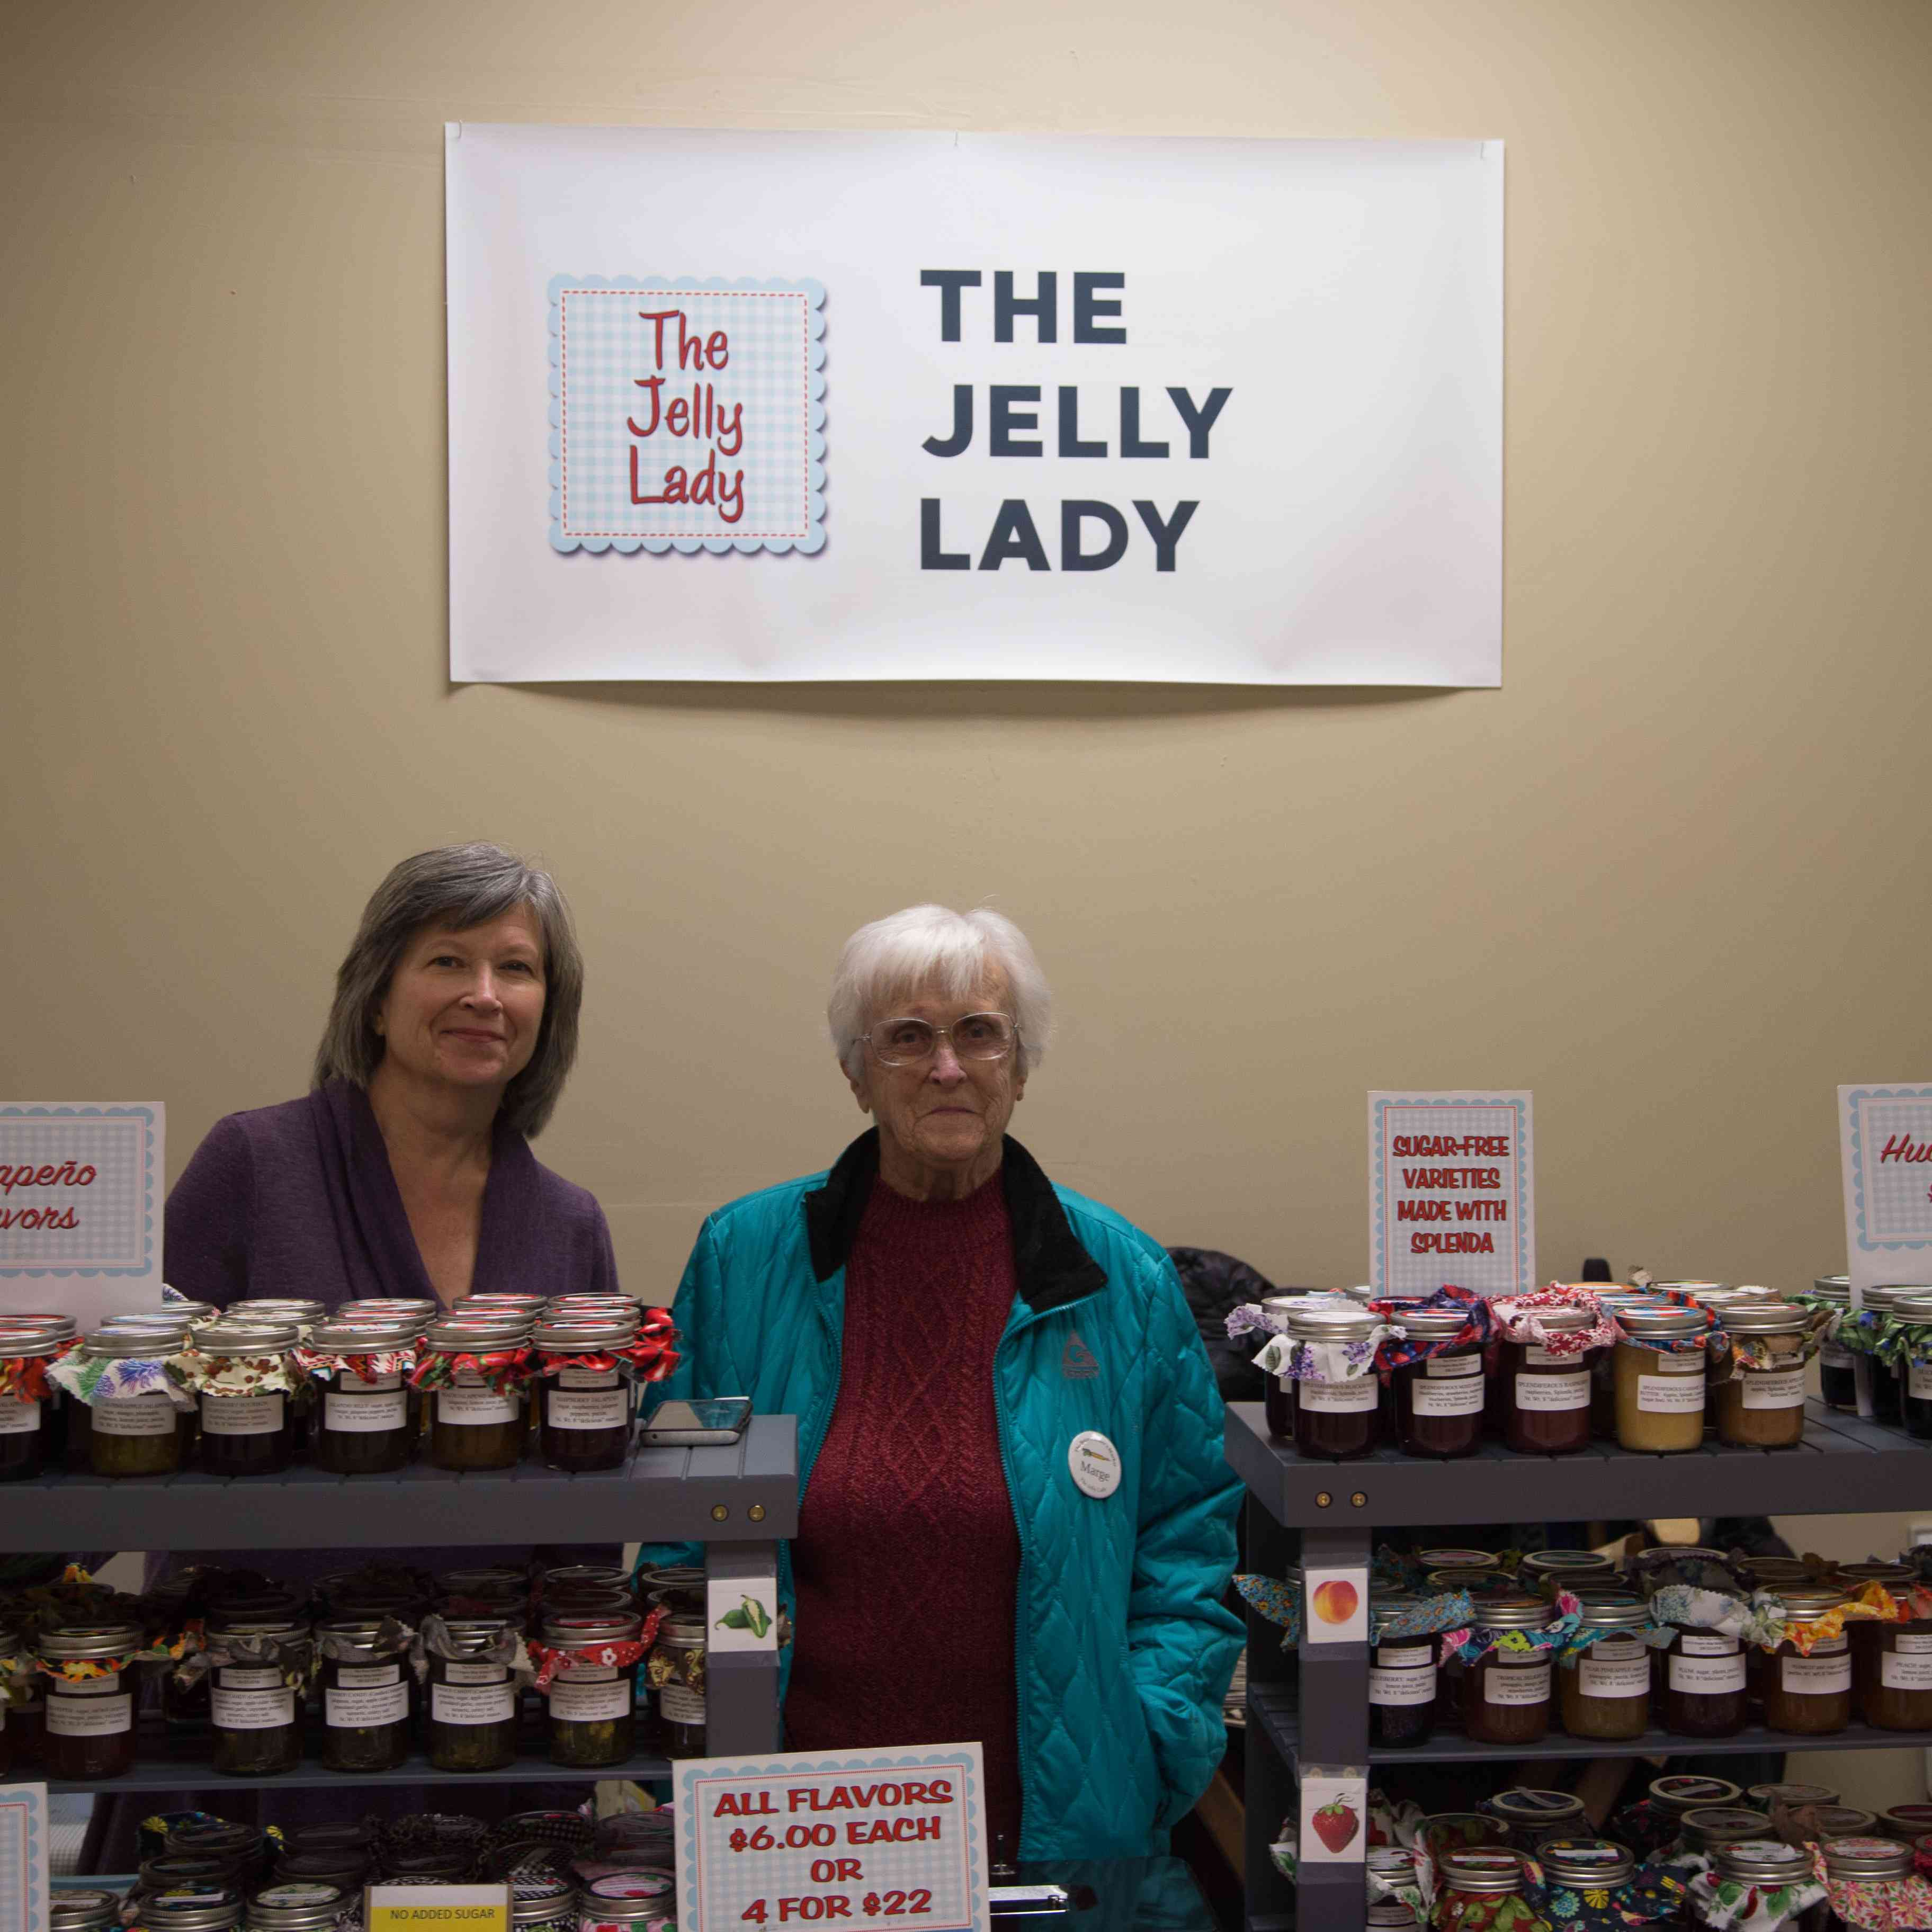 The Jelly Lady